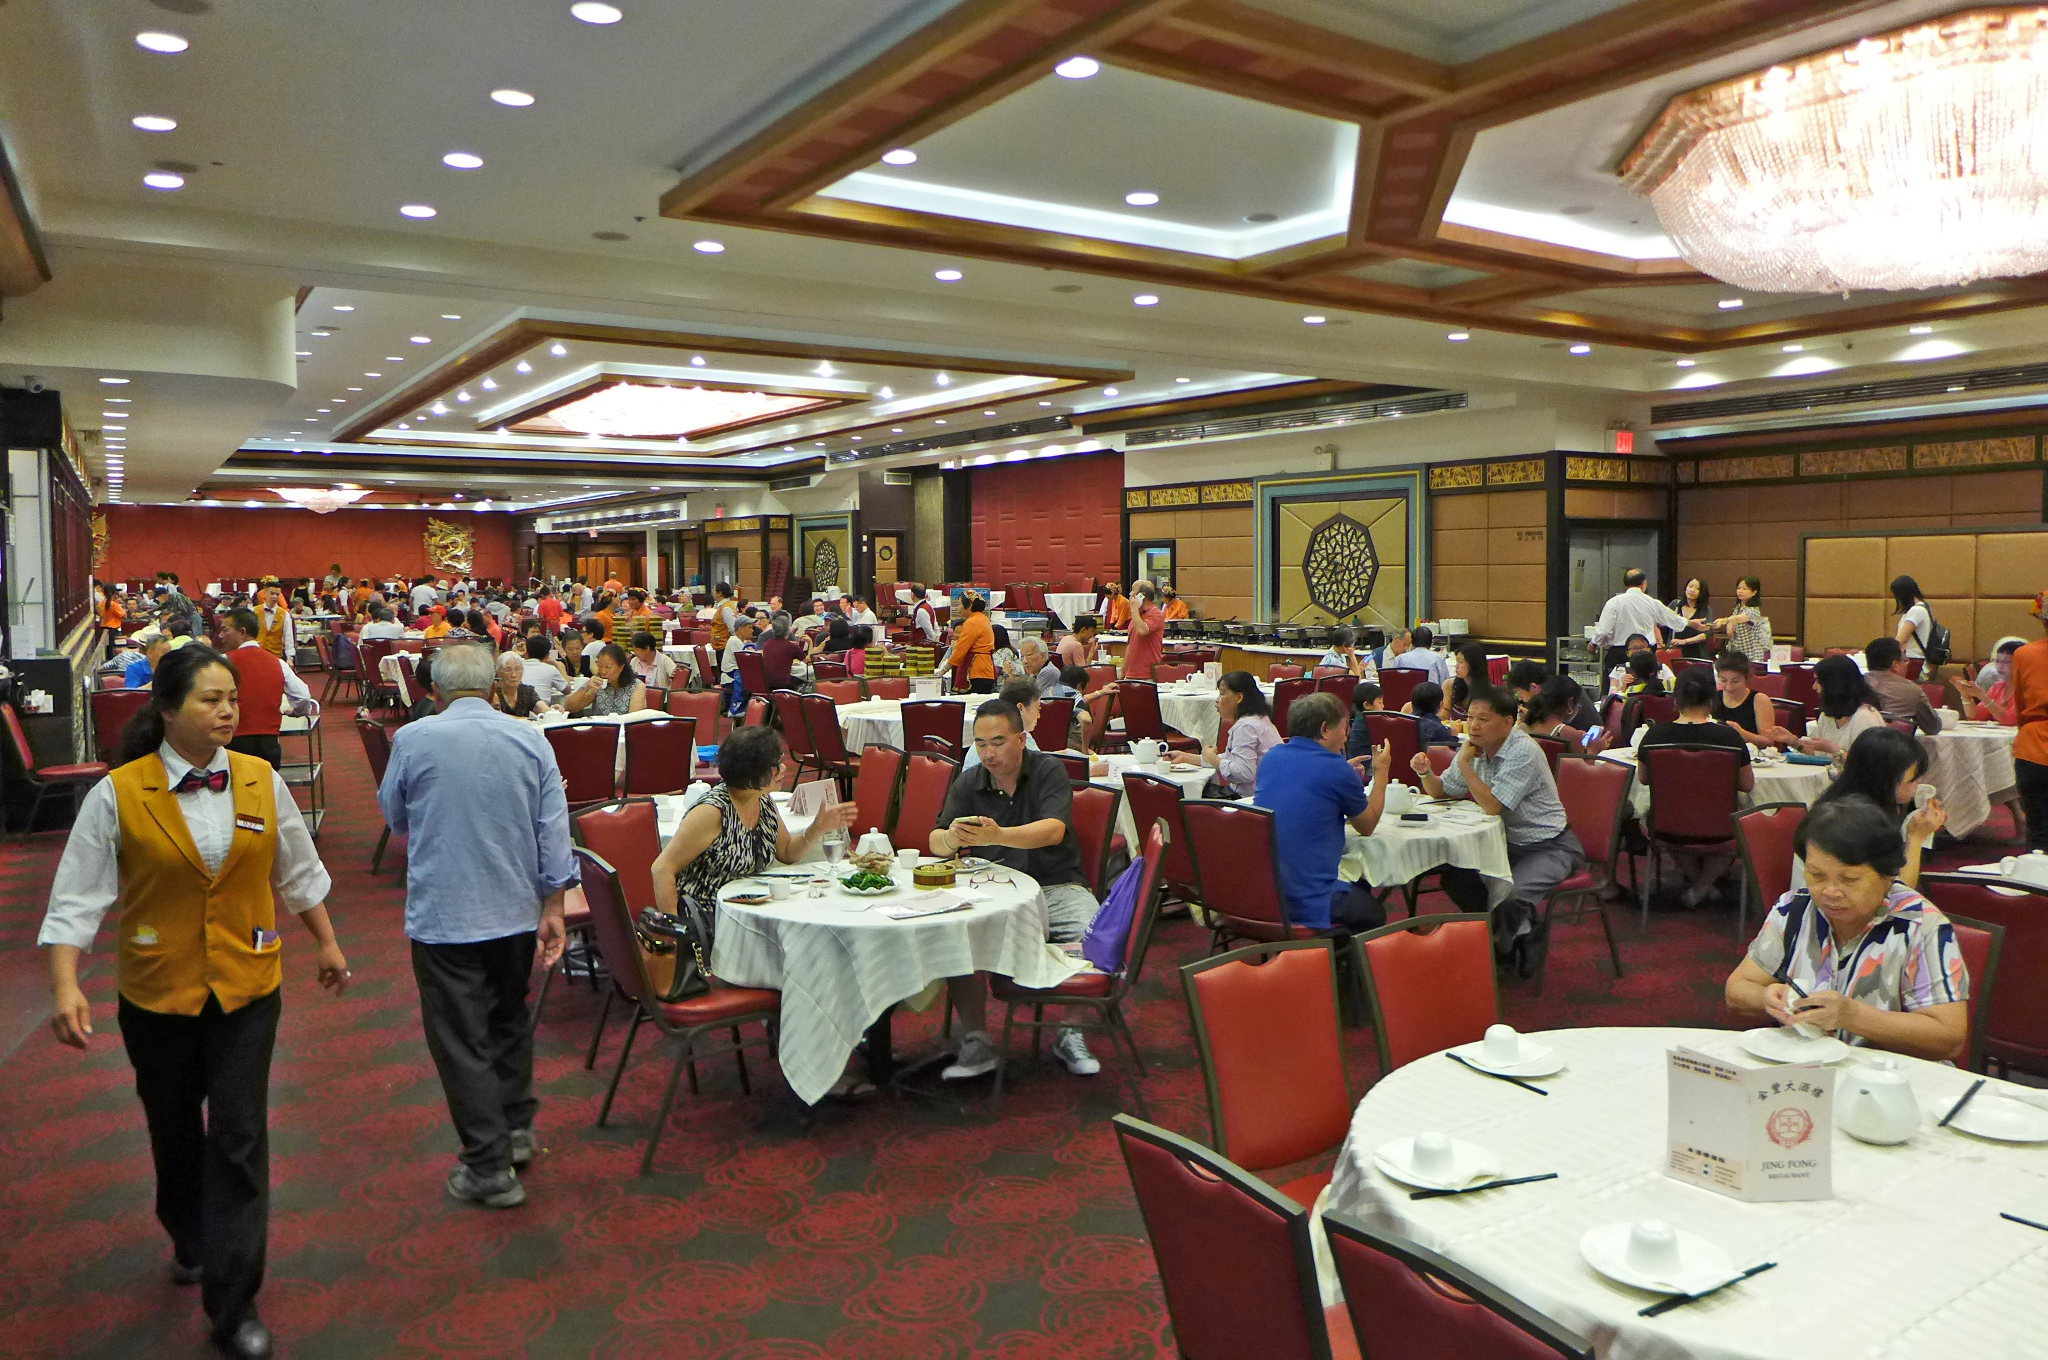 Jing Fong's dining room with large, communal round tables and a red-and-green floor is filled with diners.